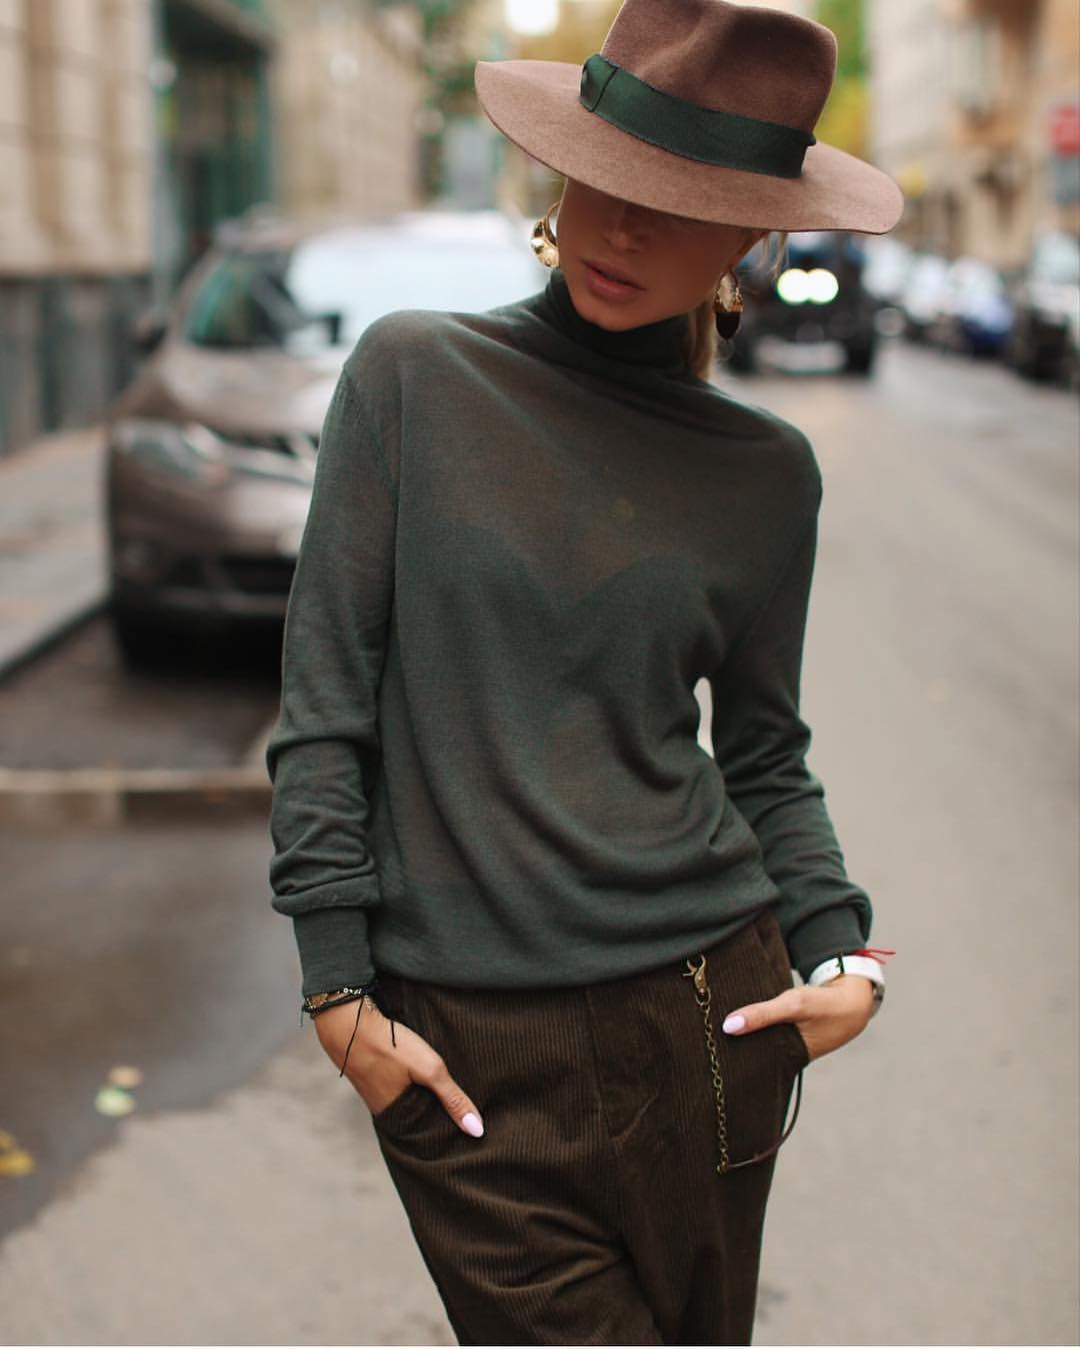 Emerald Green Turtleneck Sweater And Brown Velour Pants With Fedora Hat 2020